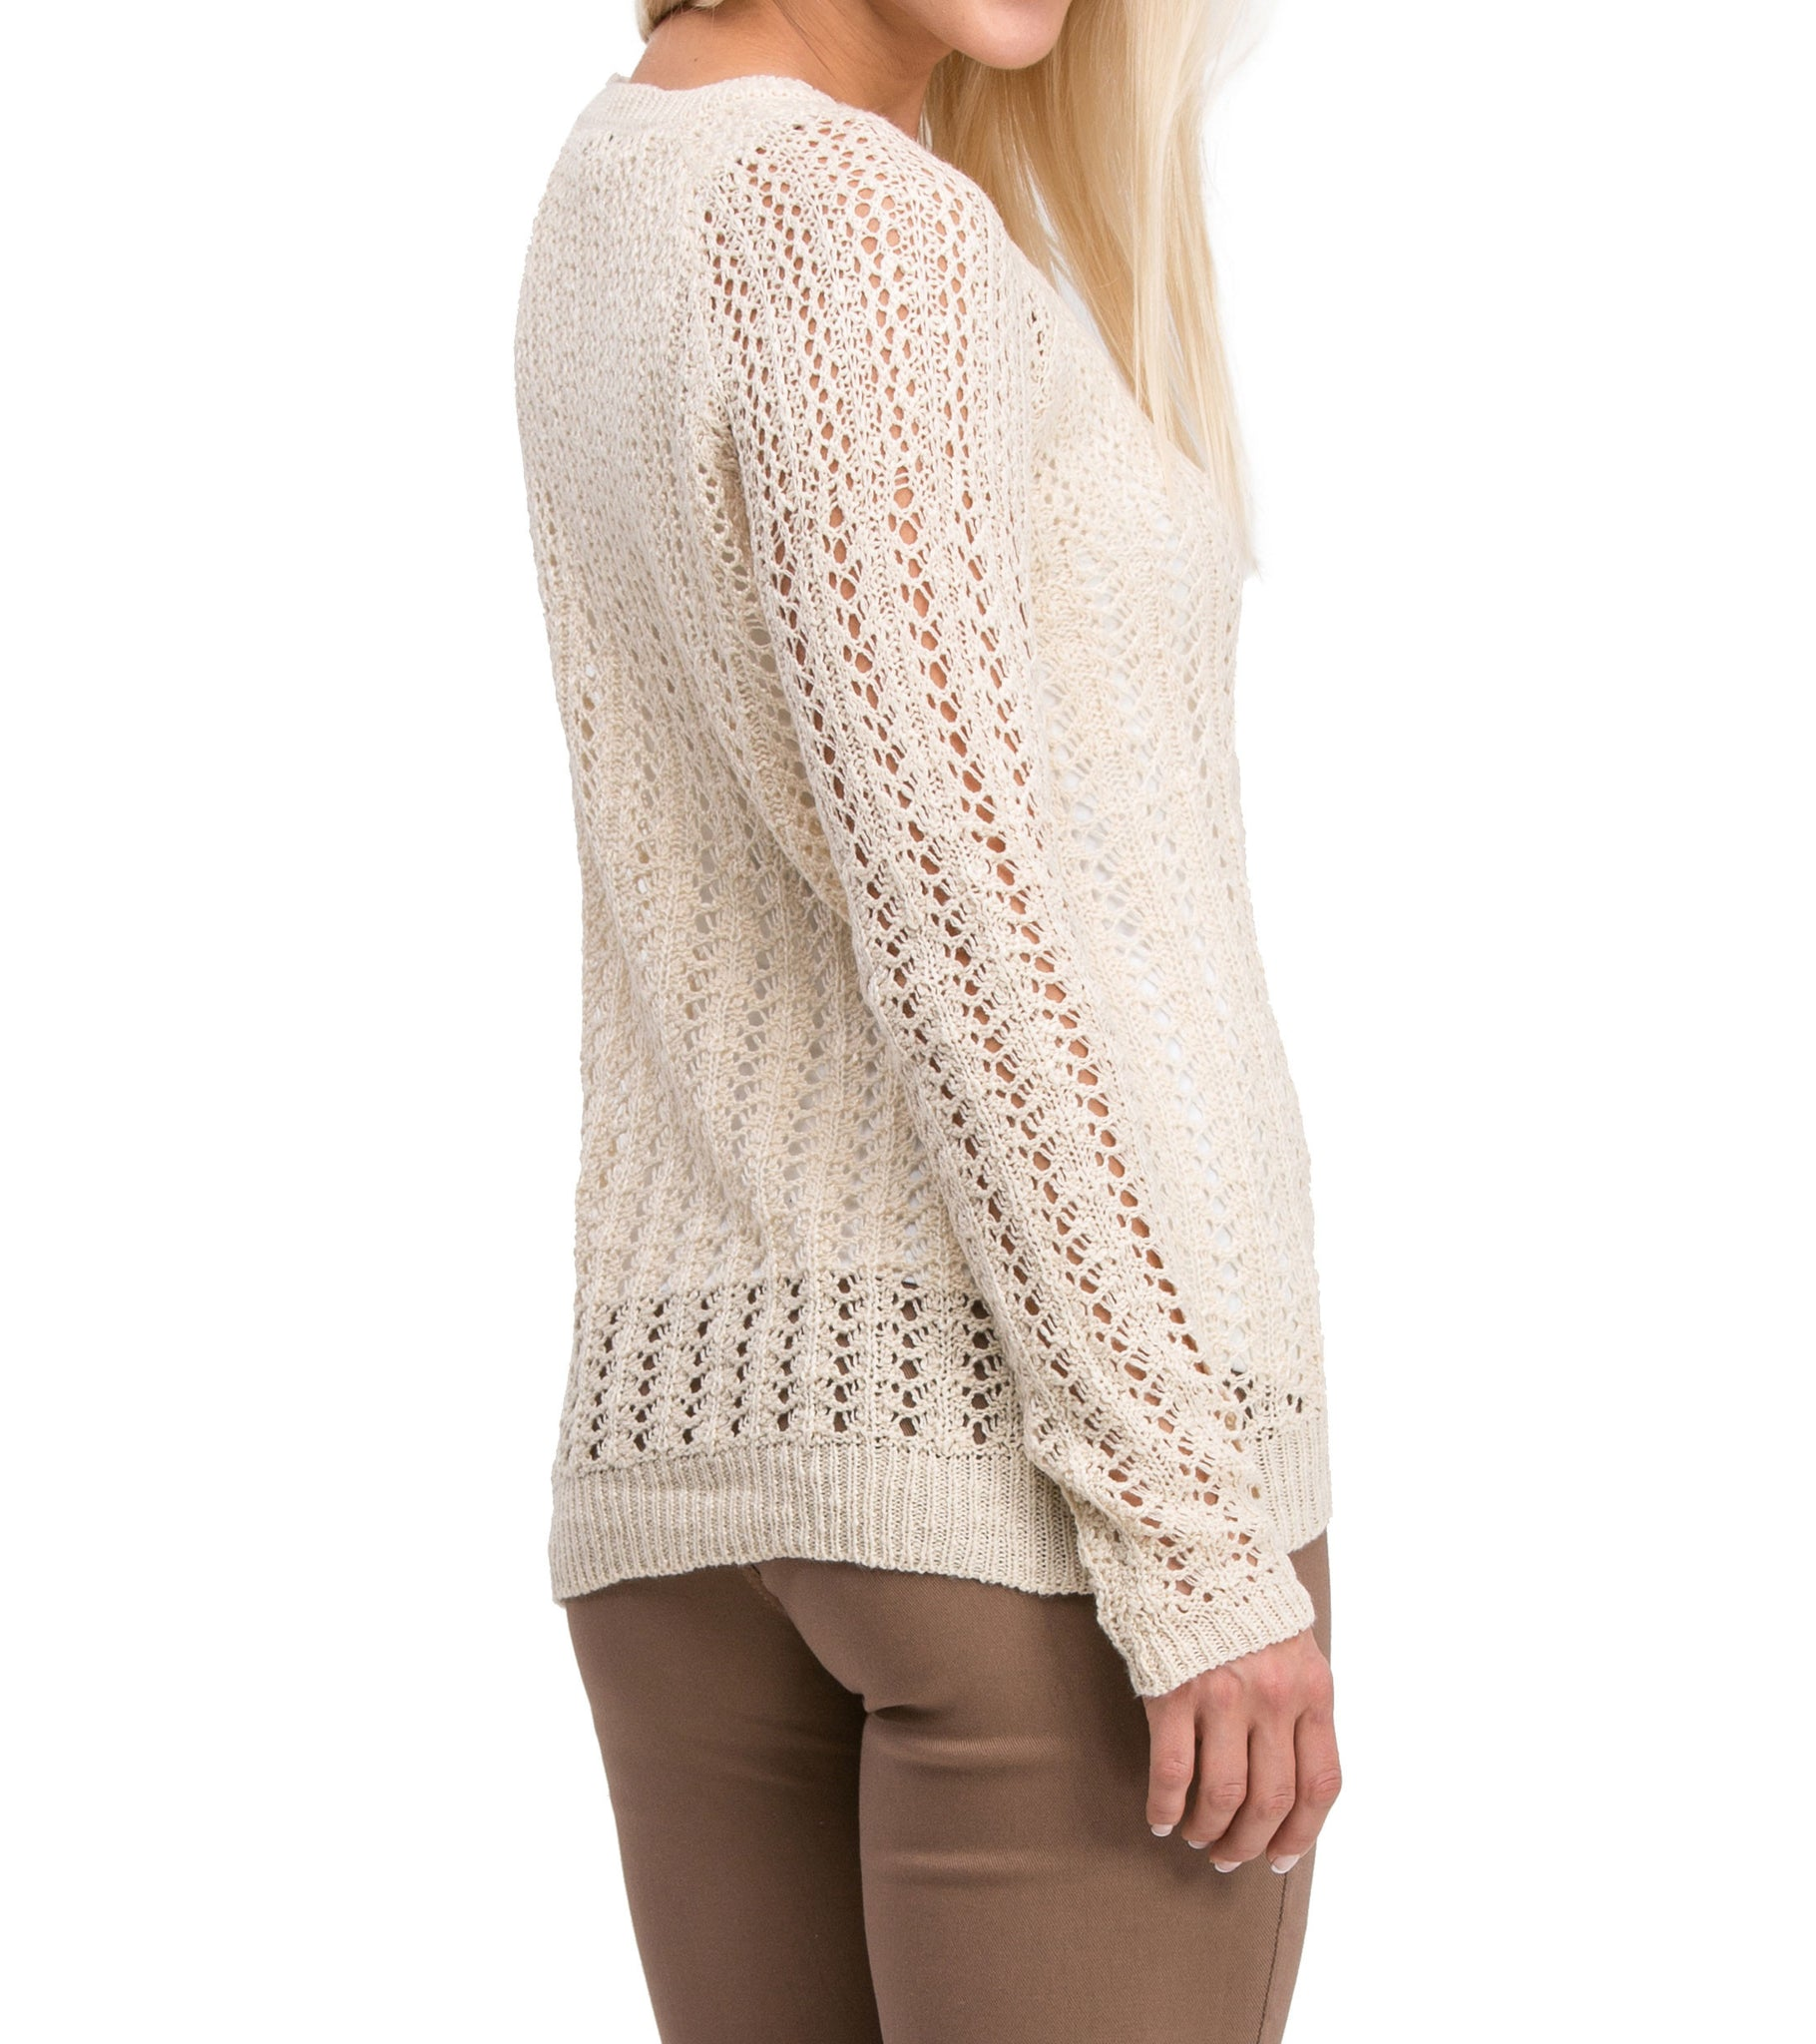 Casual Modern Long Sleeve Mesh Knit Crew Neck Sweater (Taupe) - Poplooks